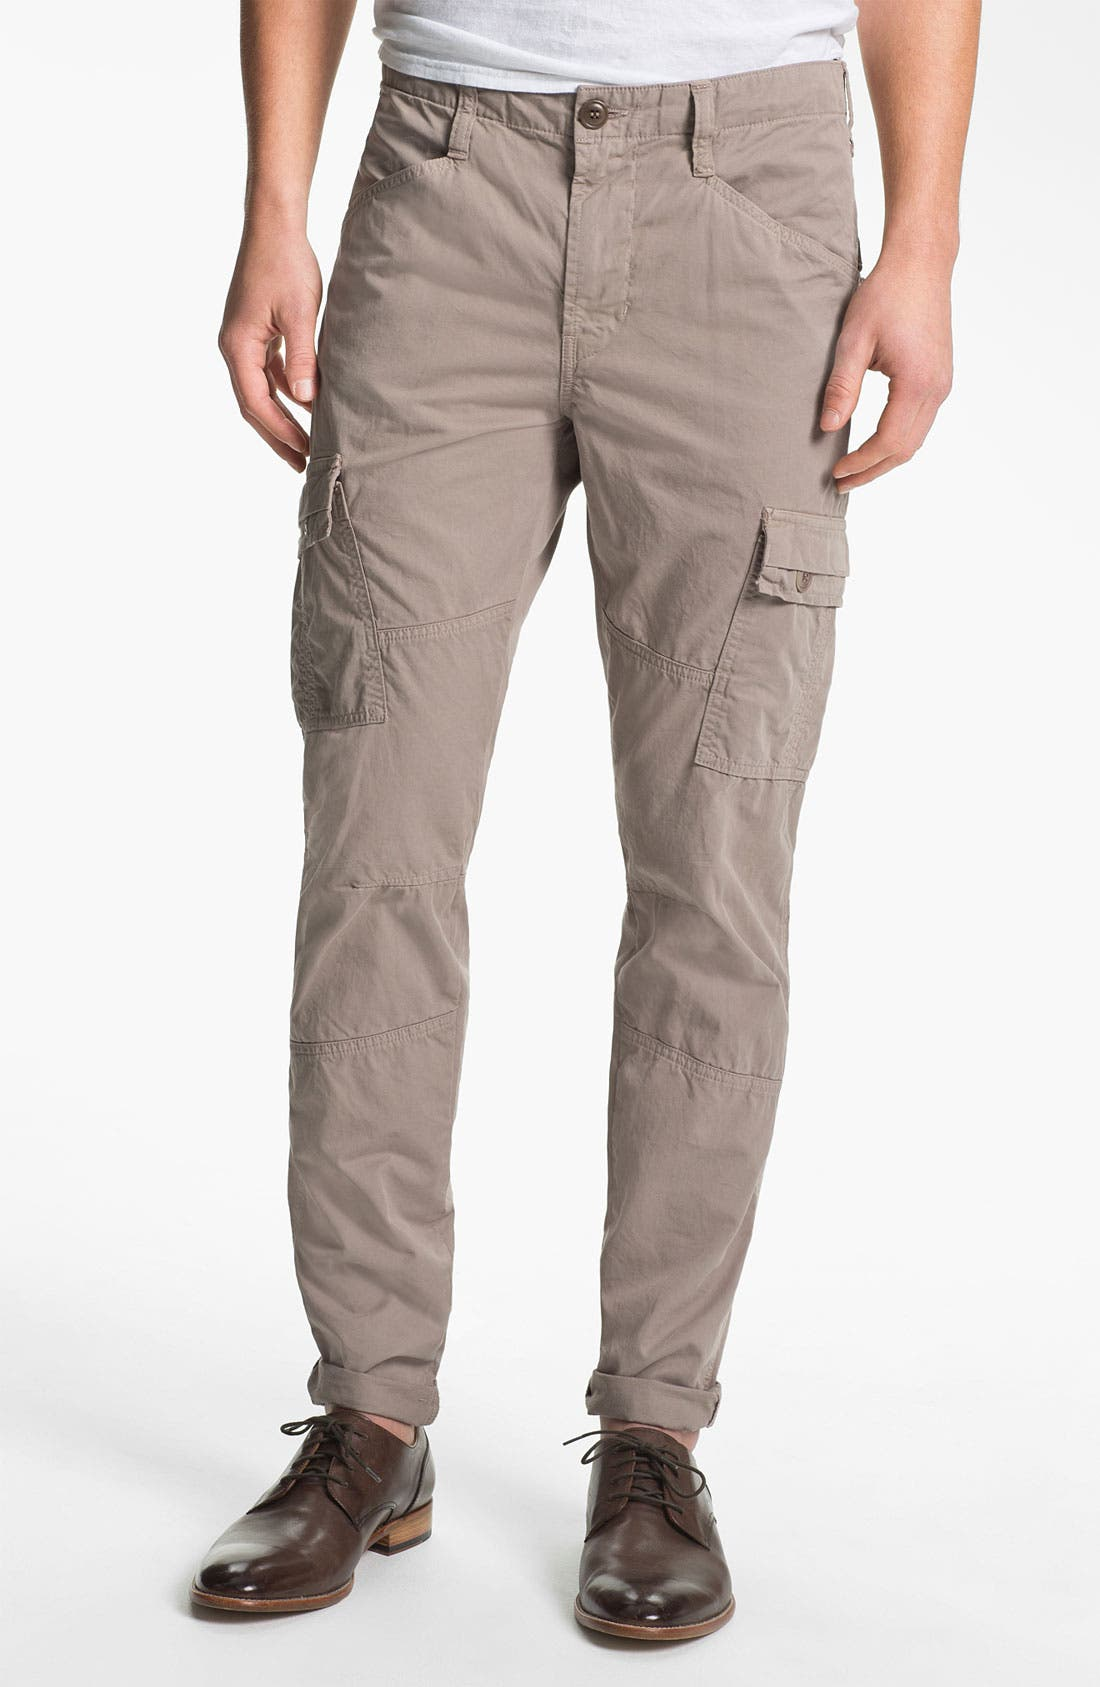 Alternate Image 1 Selected - J Brand 'Trooper' Slim Cargo Pants